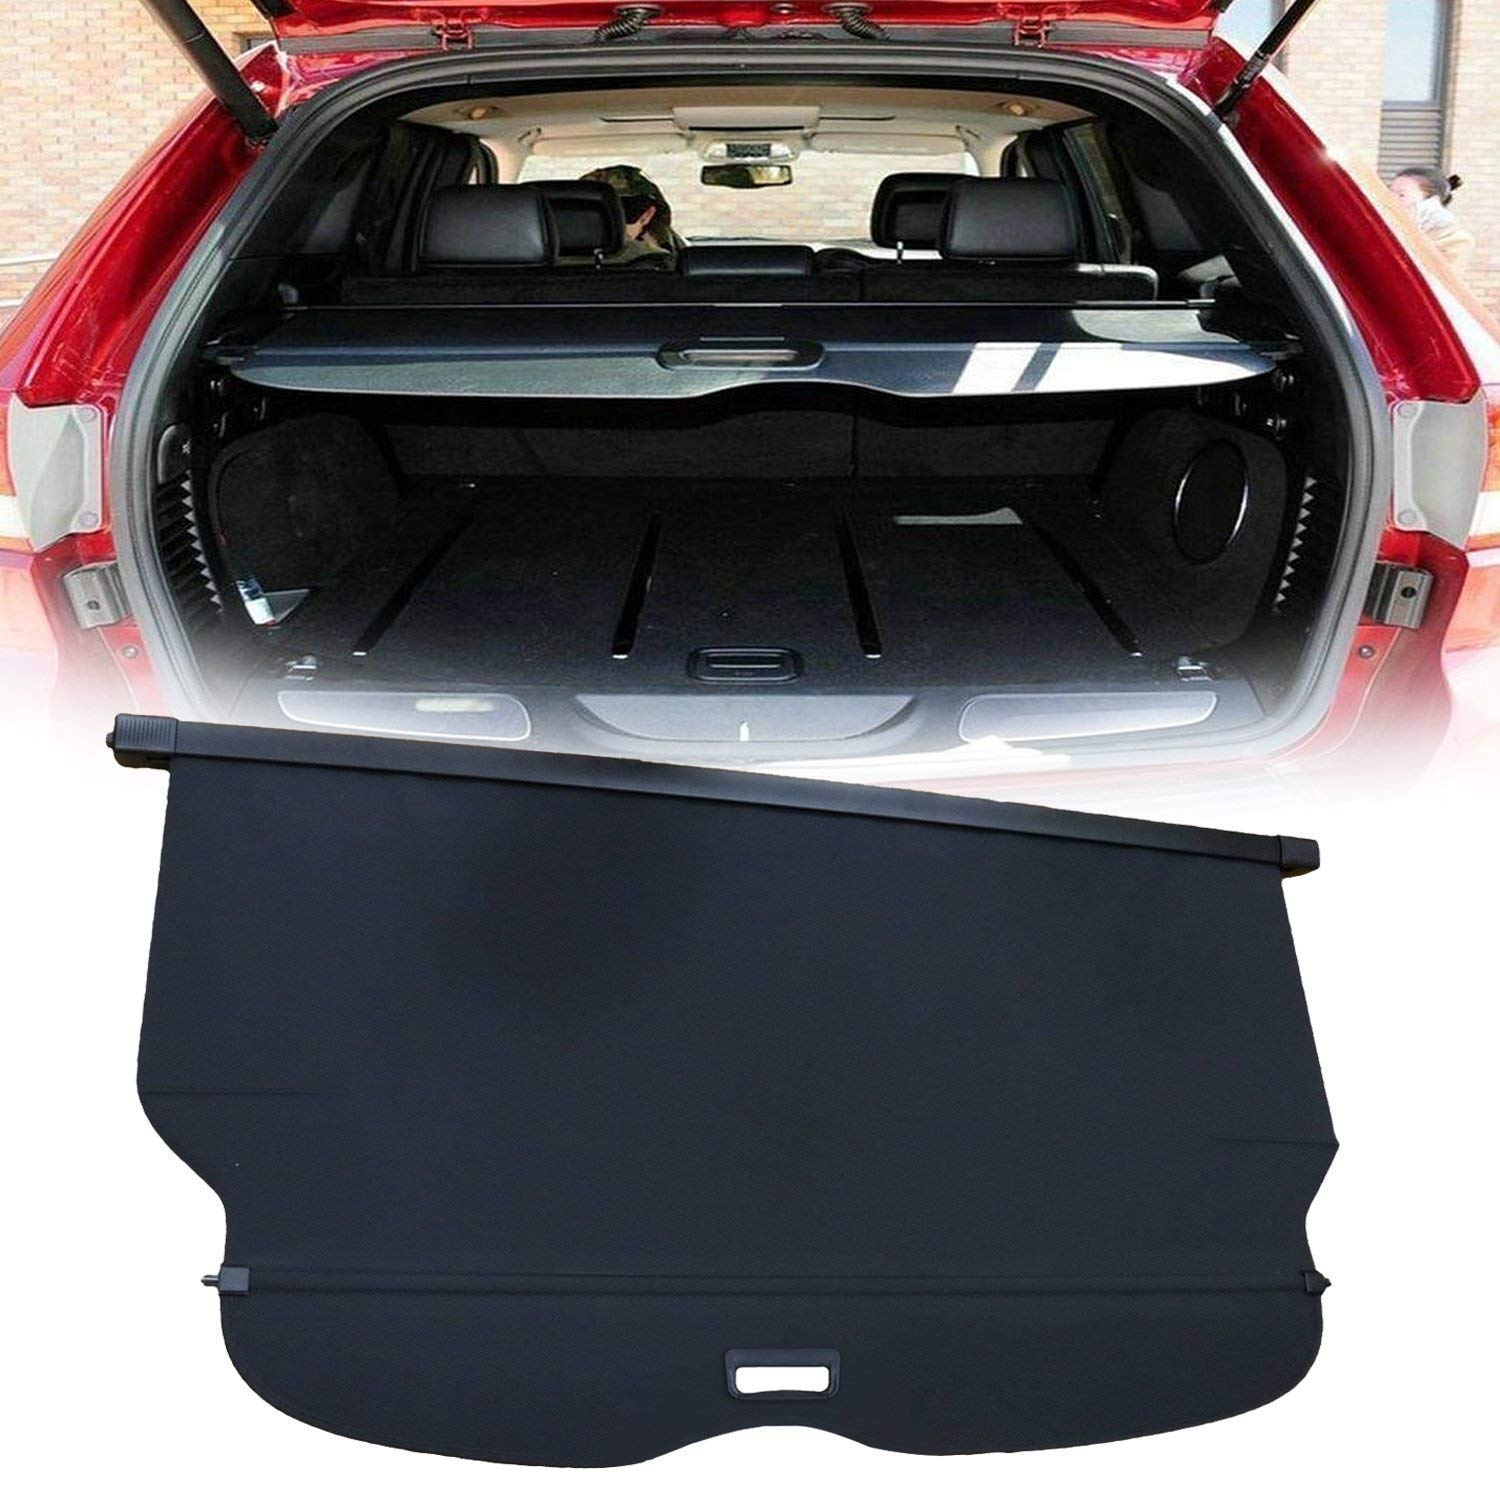 yoursme cargo cover retractable black luggage security shield rear trunk cover for 2011 2012. Black Bedroom Furniture Sets. Home Design Ideas